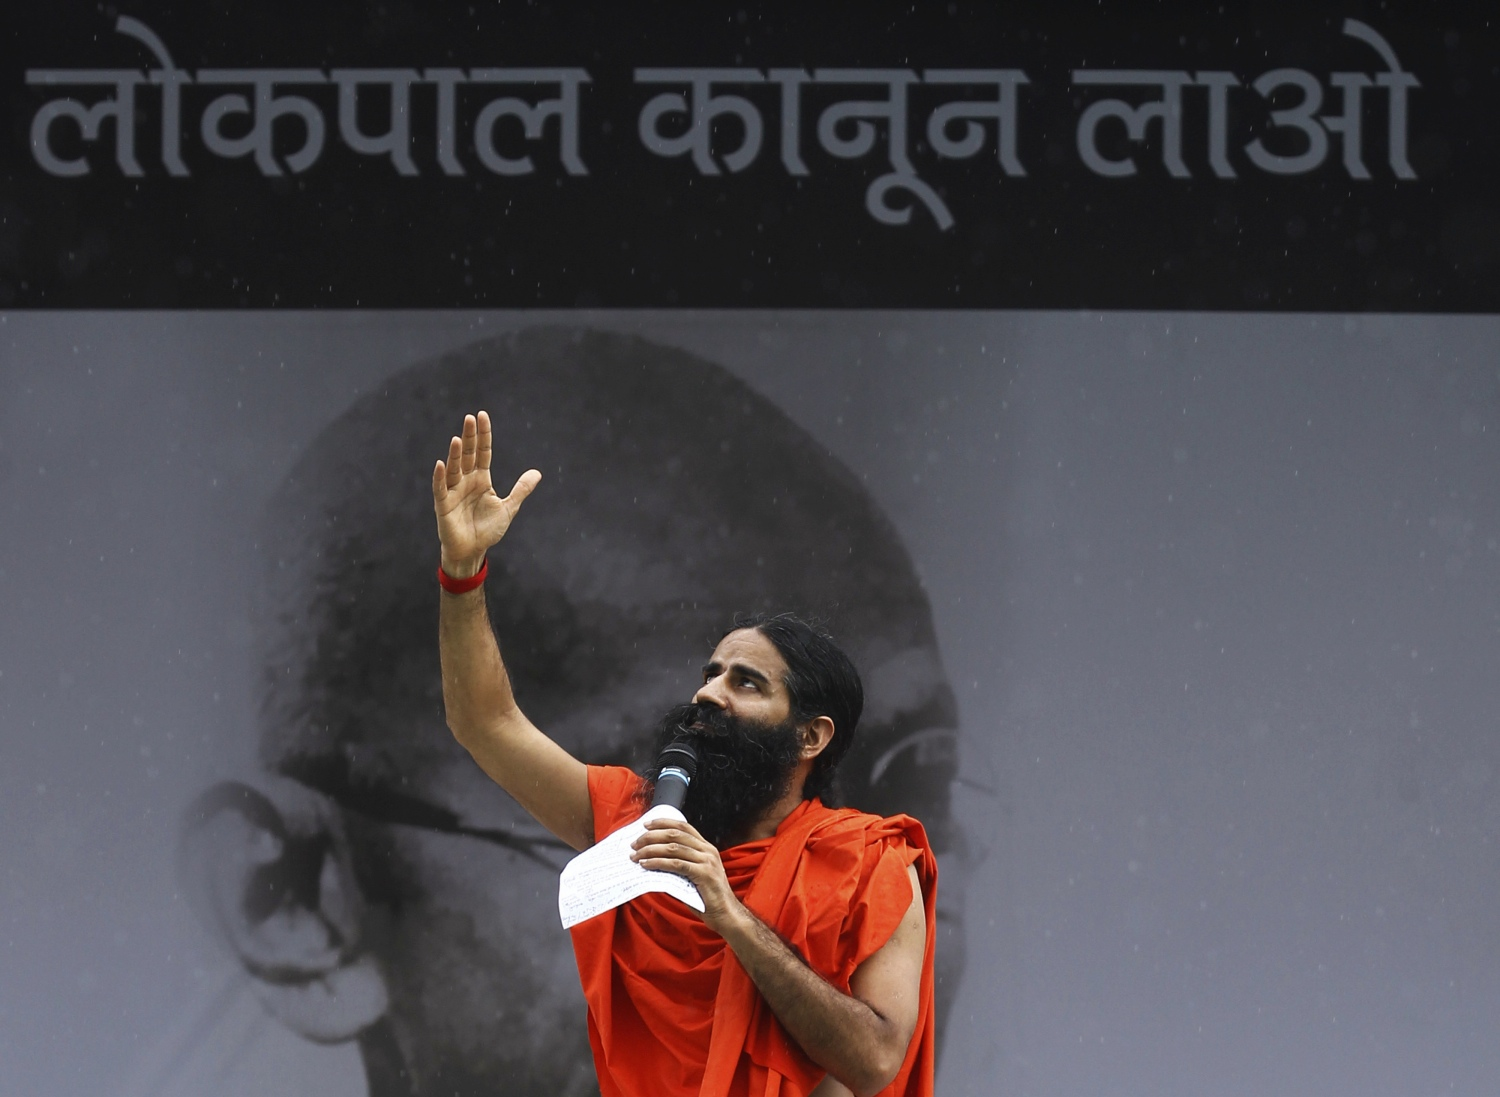 A 2011 photo of yoga guru and businessperson Ramdev at Delhi's Ramlila grounds, where social activist Anna Hazare went on a fast for the creation of a Lokpal bill. (Photo credit: Reuters).